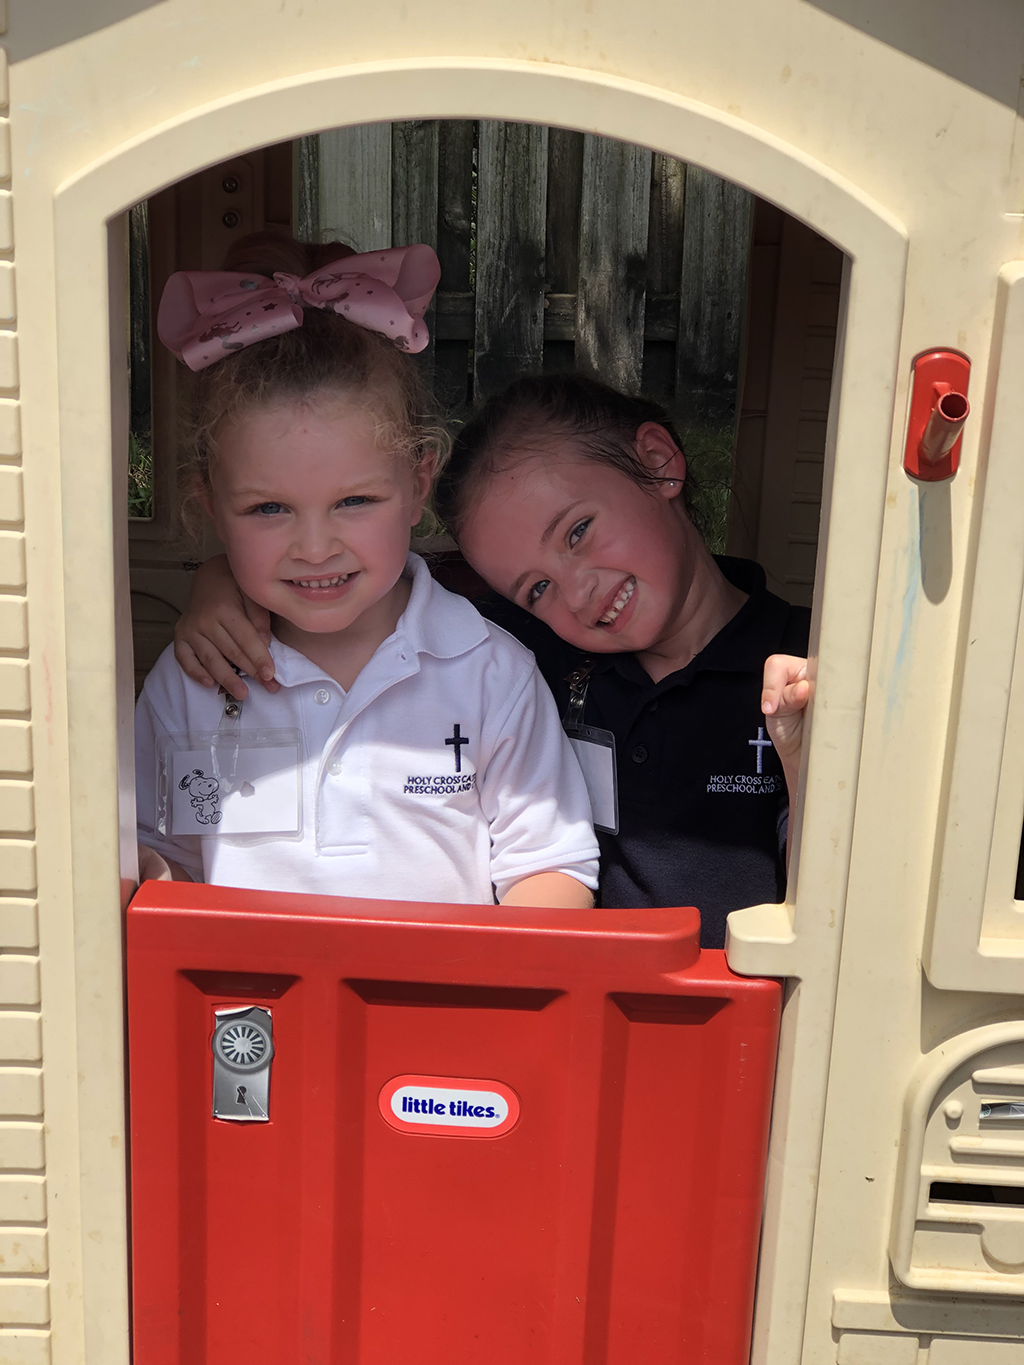 holycross-two-girls-smiling-in-playground-house